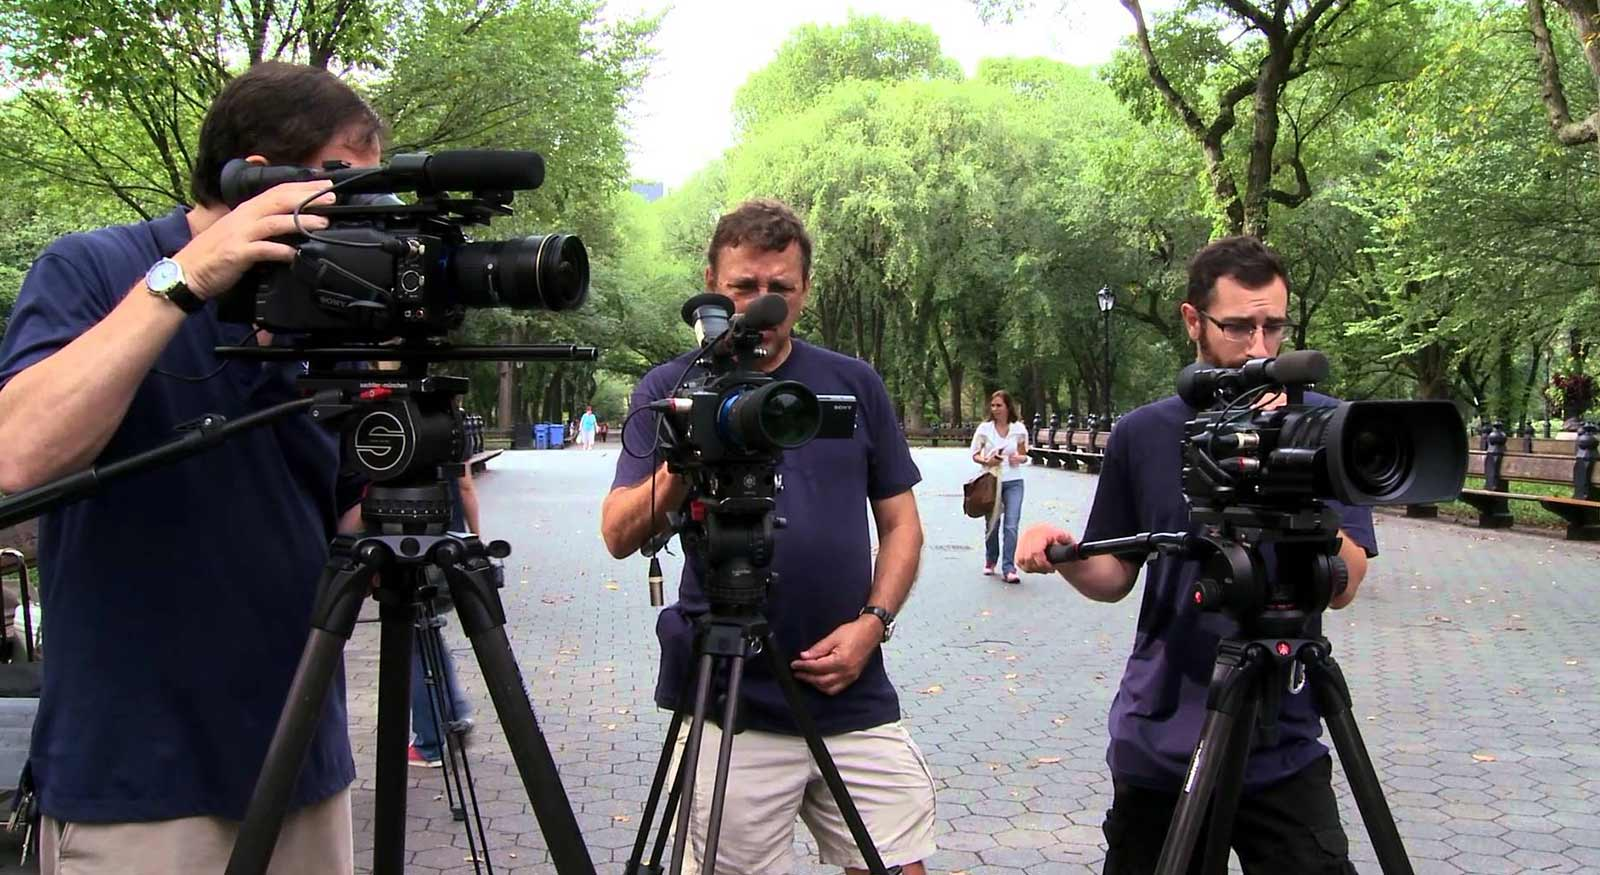 Shooting Schedule Pro Tips for a 10-Page Shoot Day - 7. Multi Camera Film Set